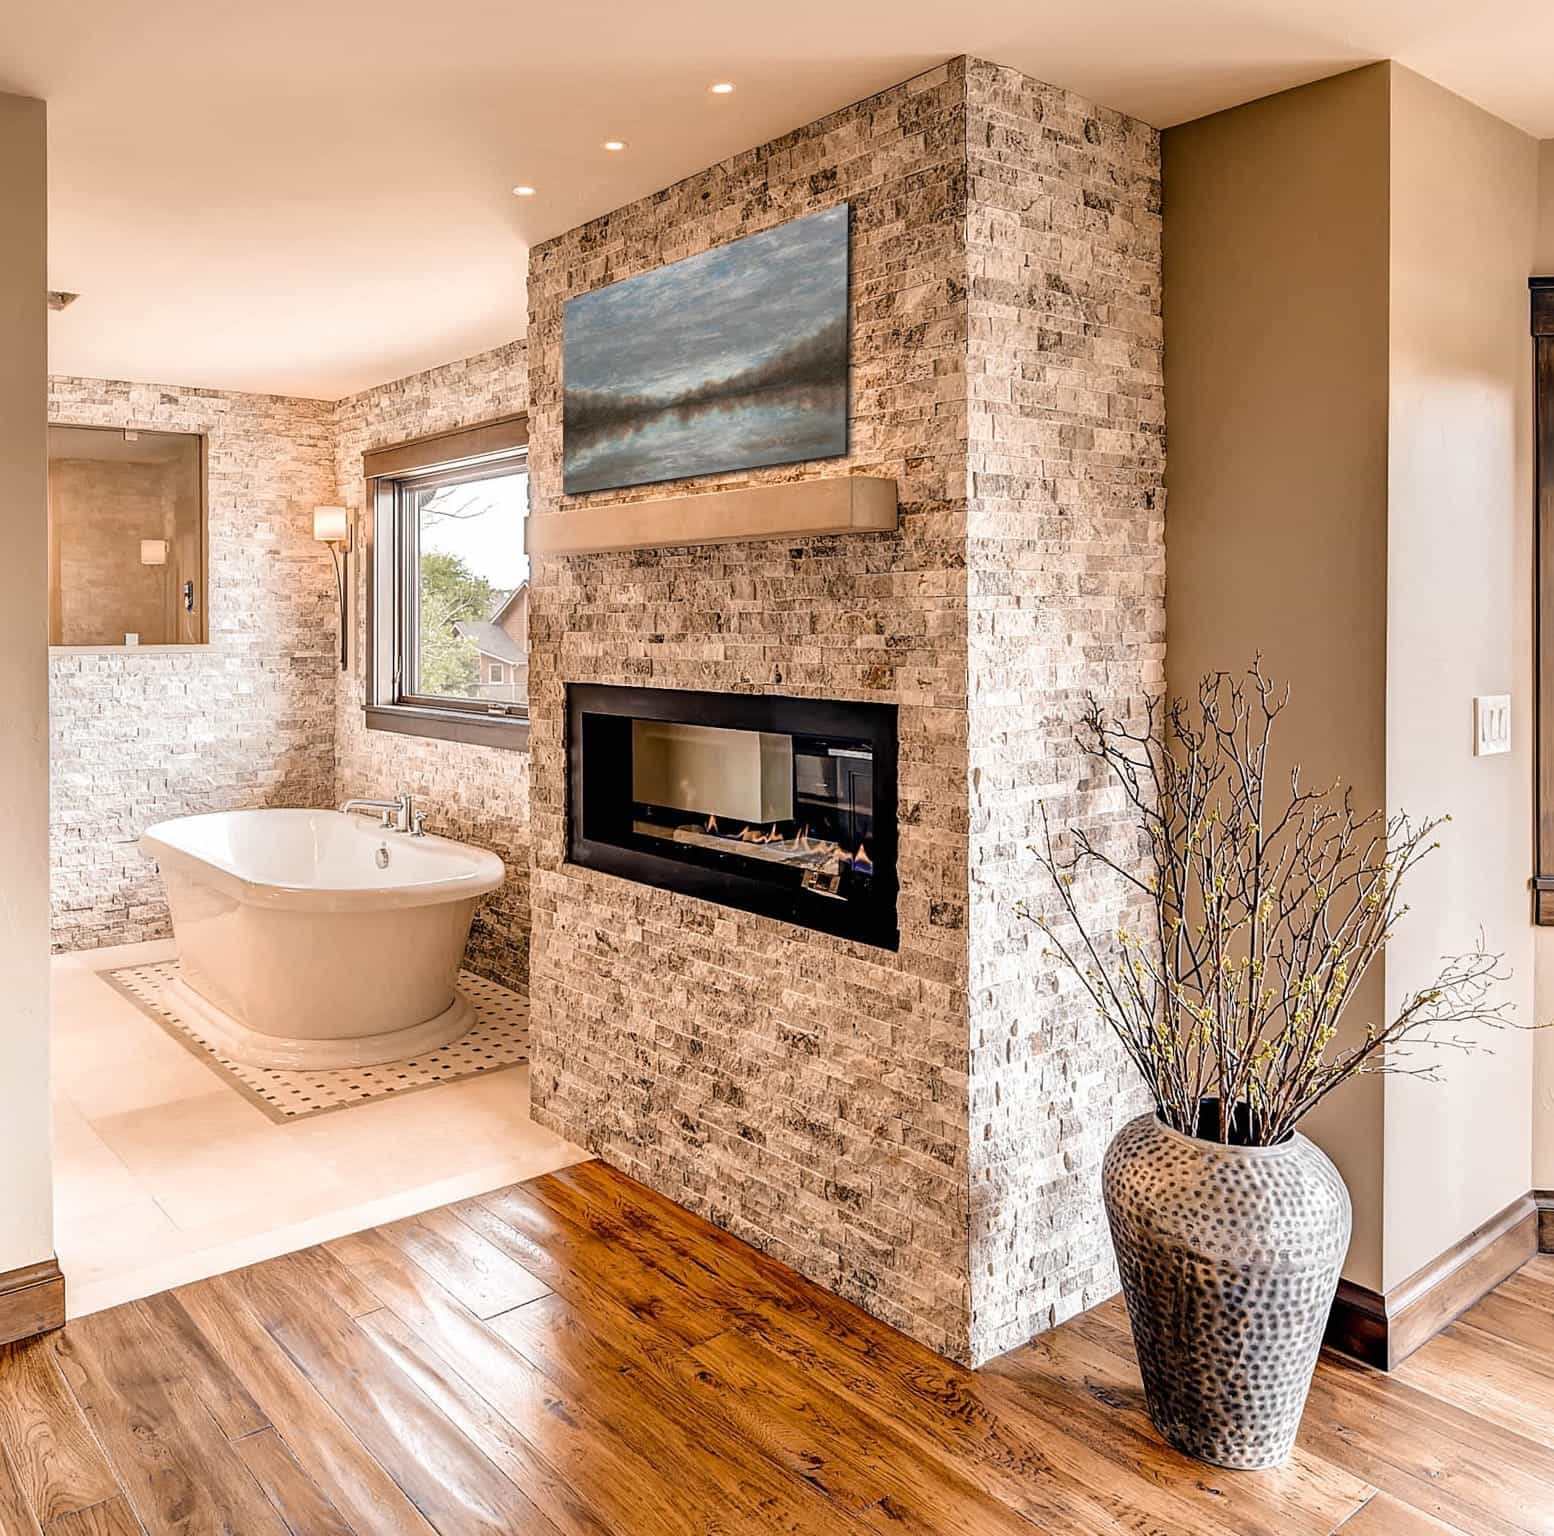 Contemporary Fireplace And Brick Wall In Rustic Bathroom (Image 5 of 30)